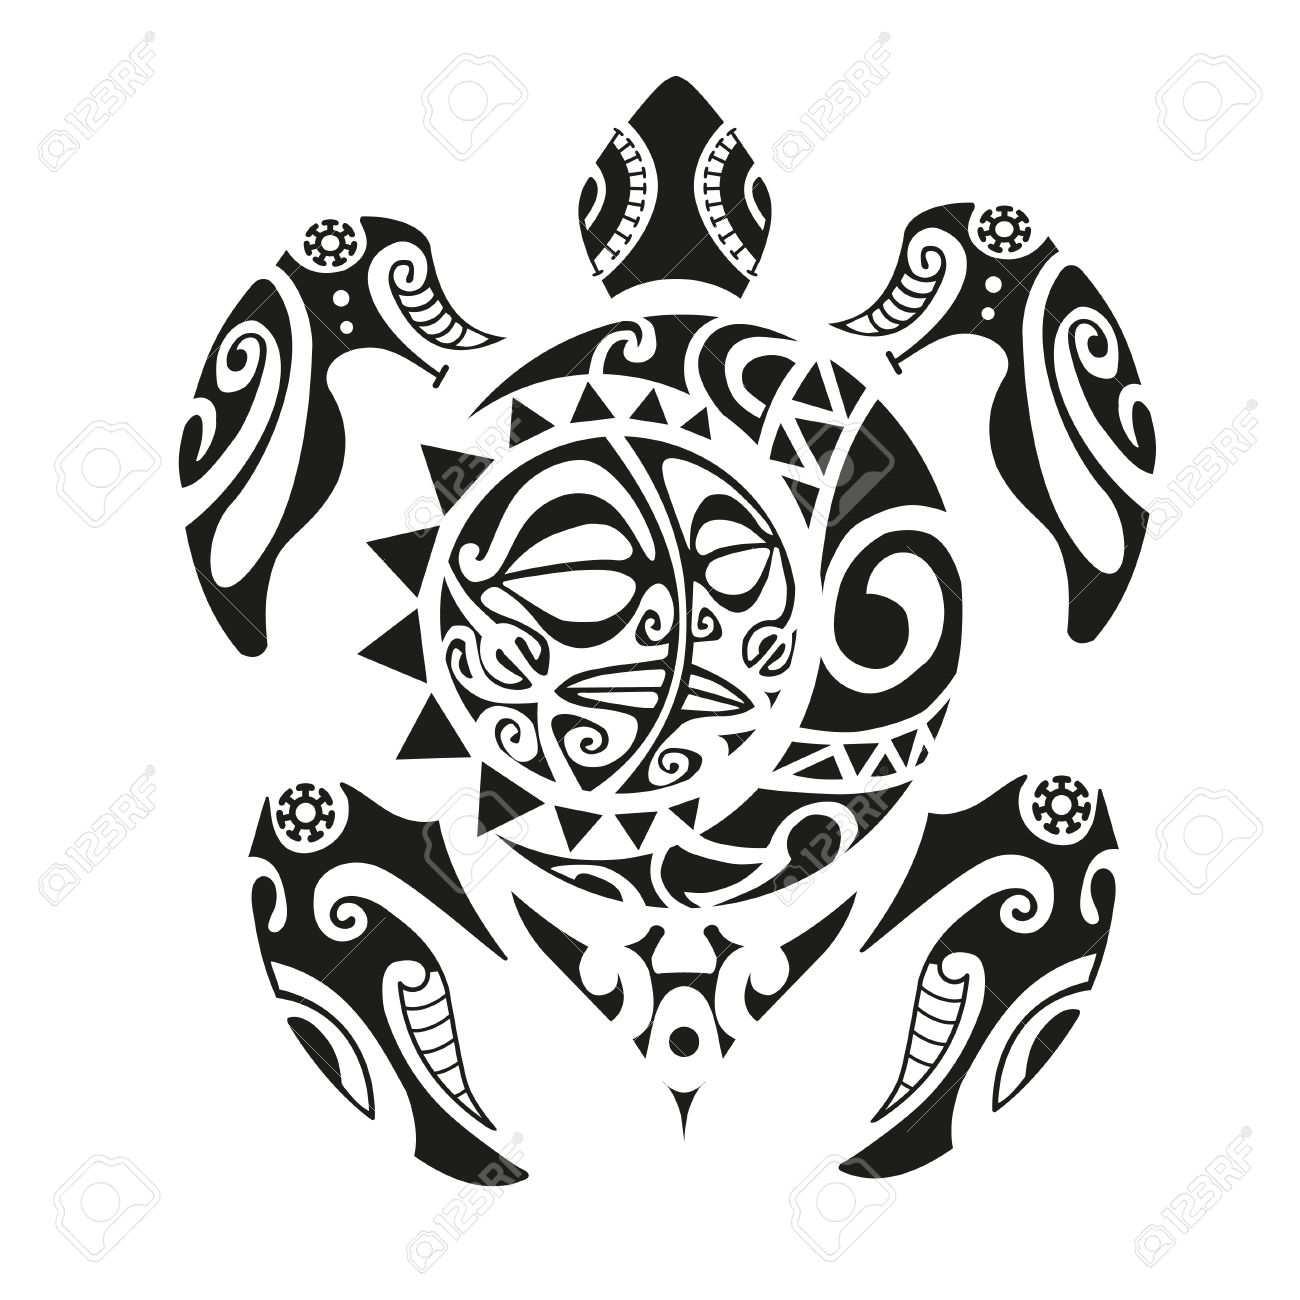 Maories Significado Gallery Of Fabulous Perfect Maori Pakati Para